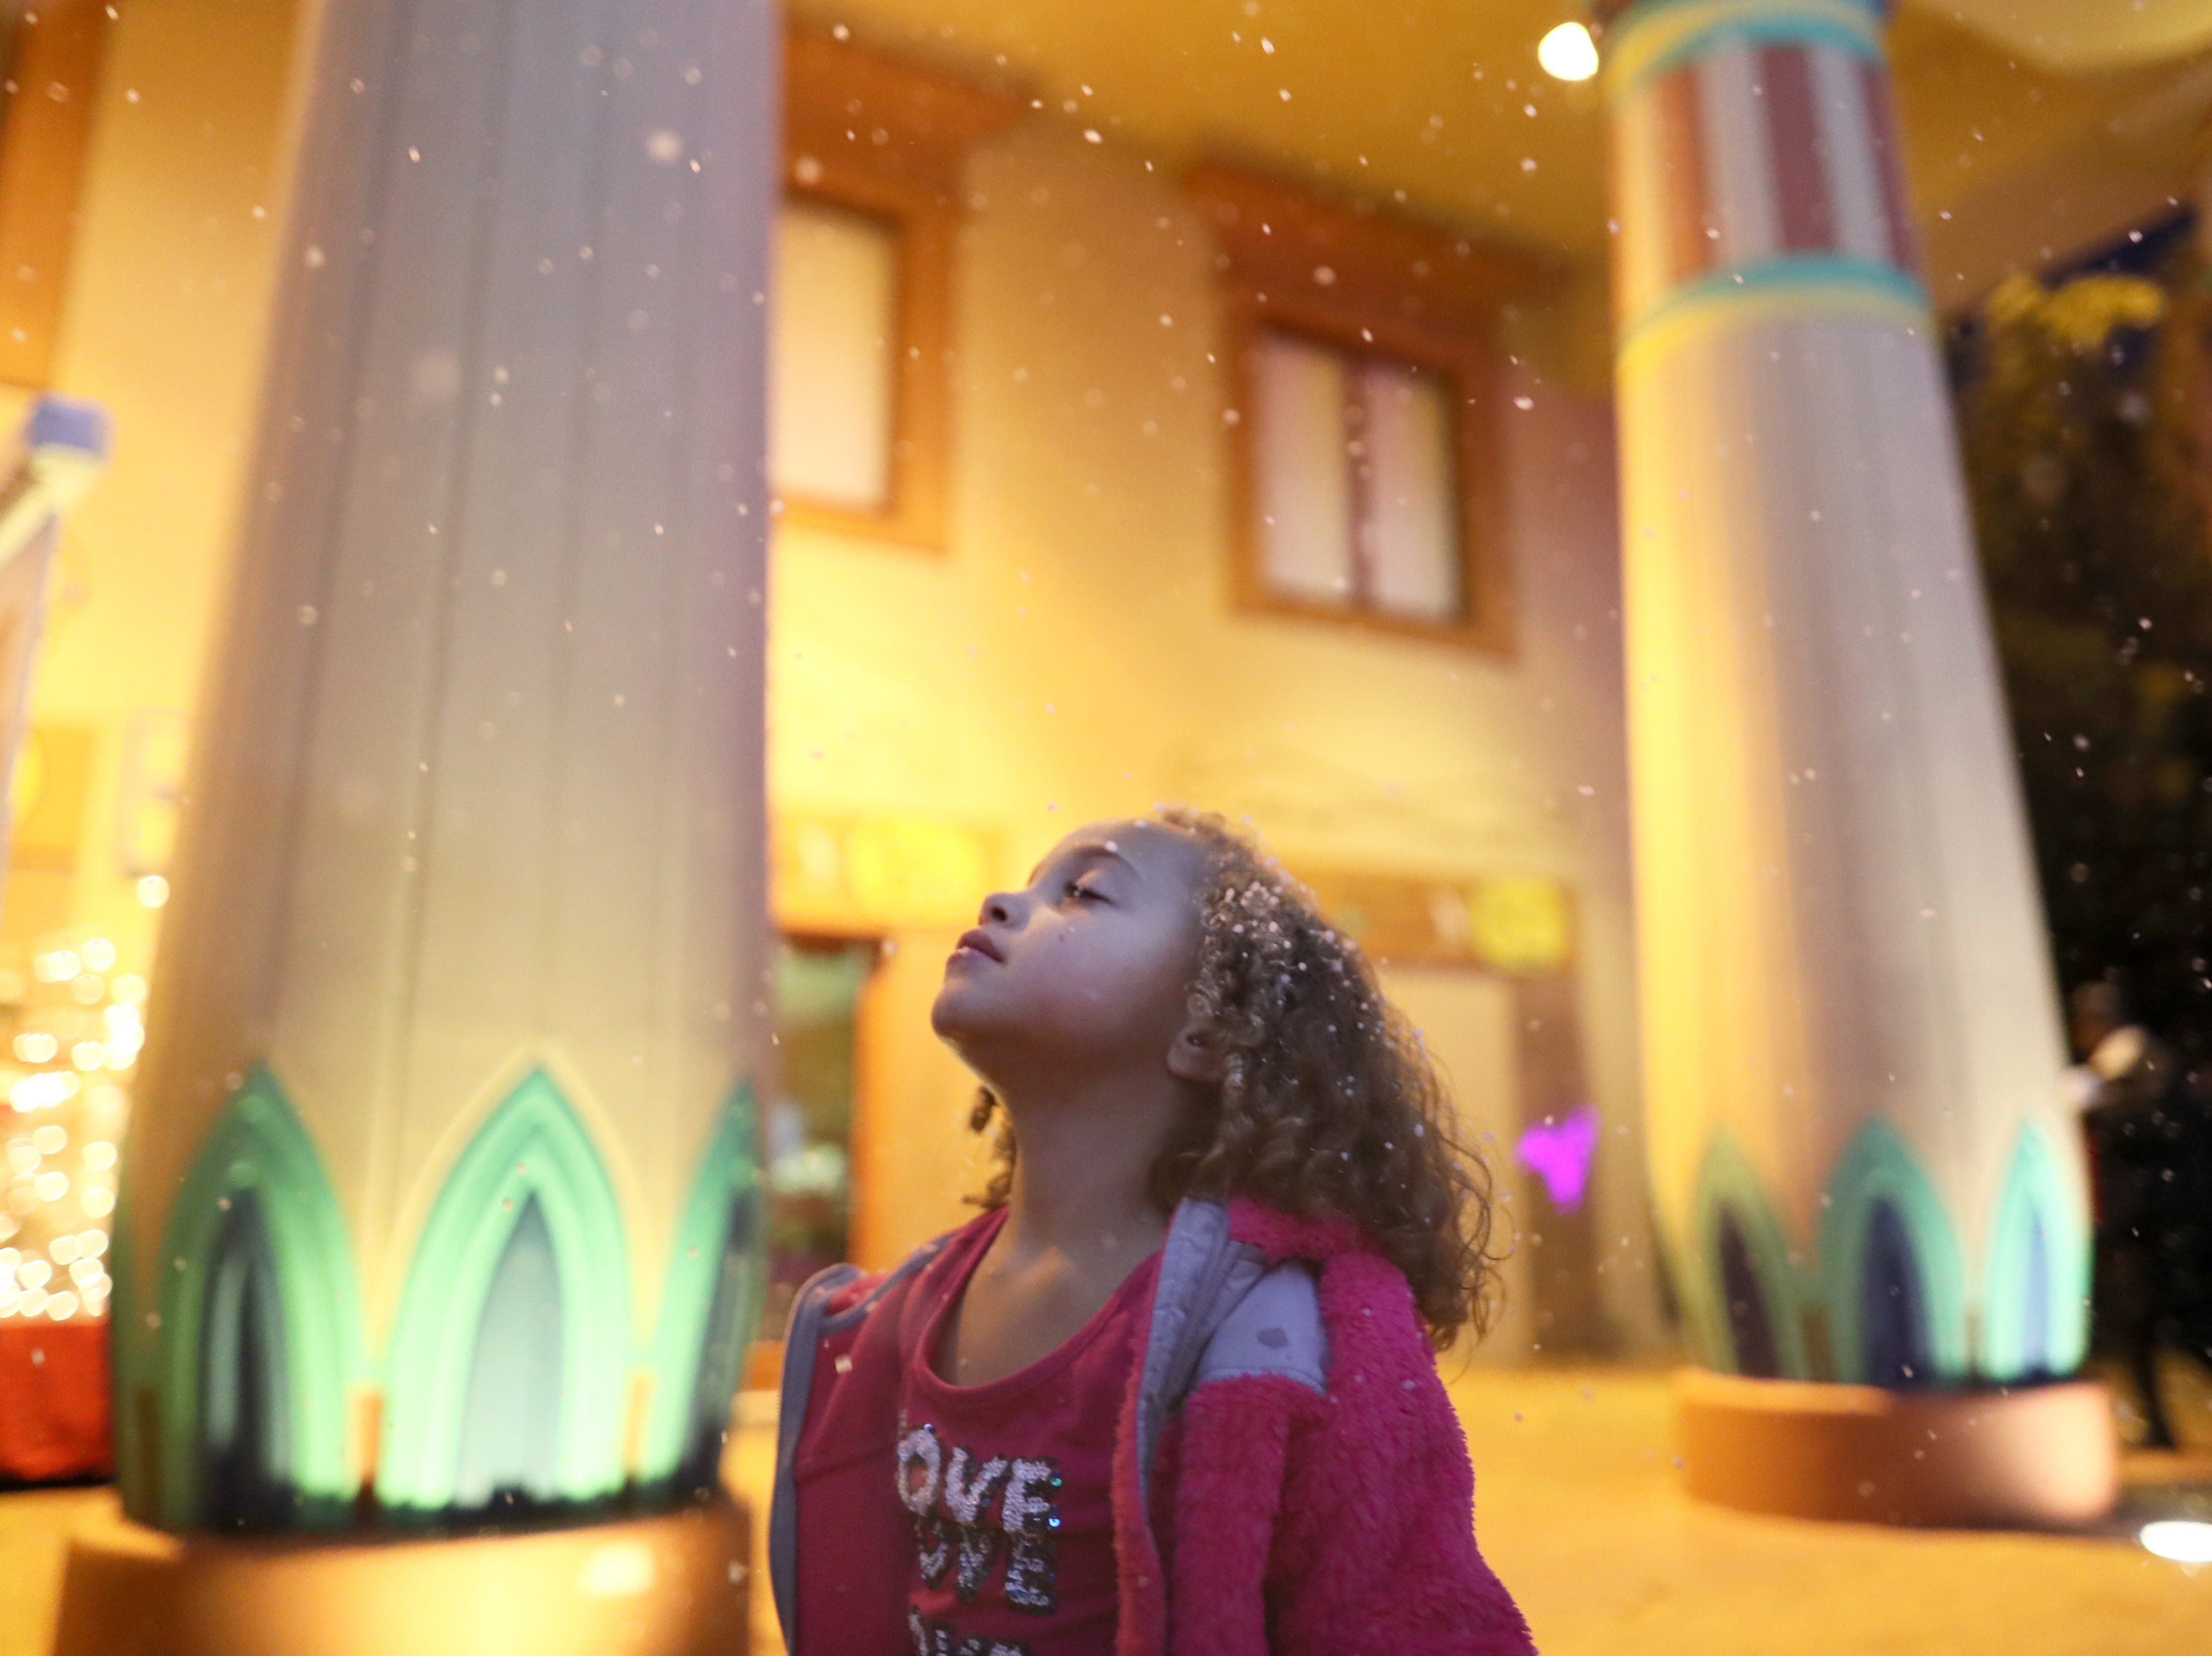 Chloe Conley, 5, holds her face up under the artificial snowflakes greeting guests of Zoo Lights, a holiday season event at the Memphis Zoo Saturday, Nov. 24, 2018.